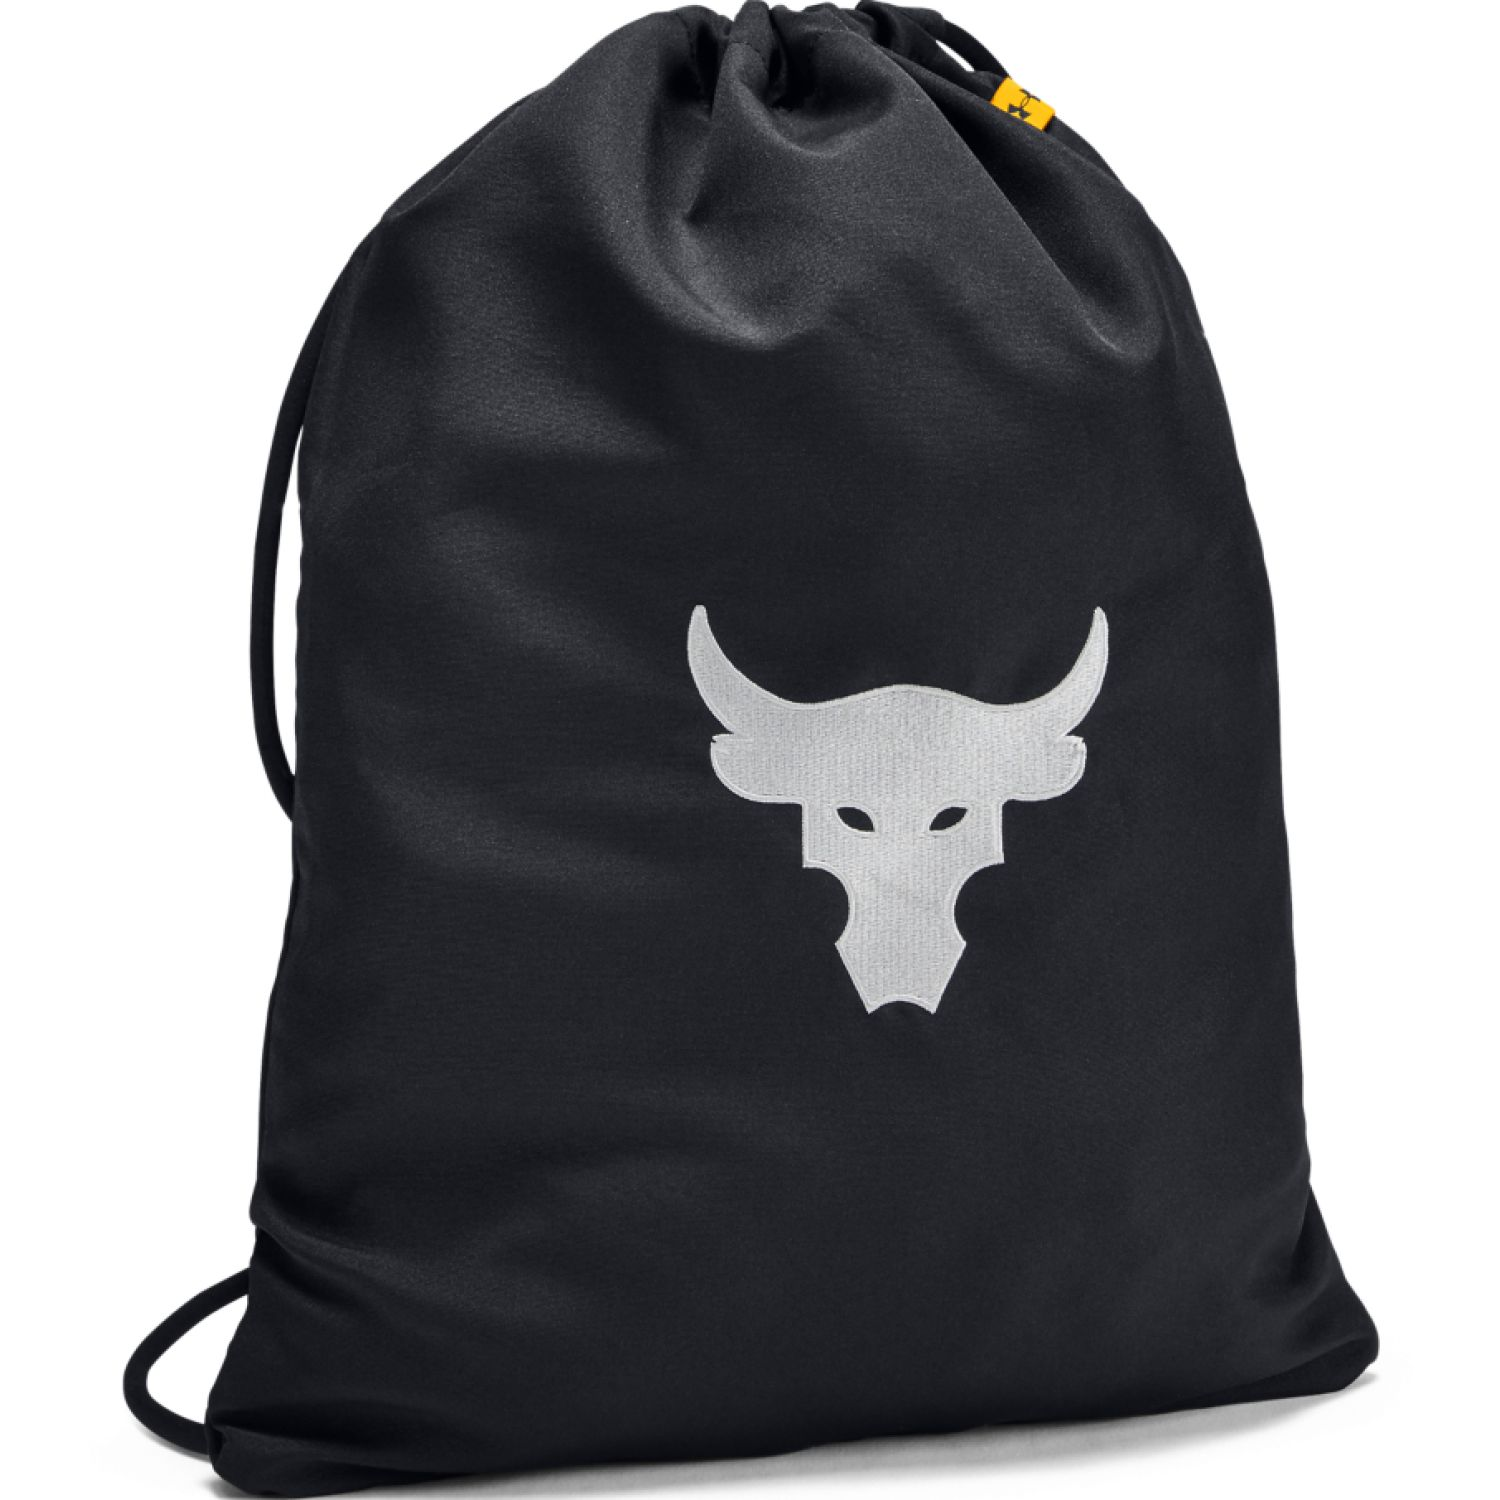 Under Armour project rock laundry bag-blk Negro Mochilas Multipropósitos